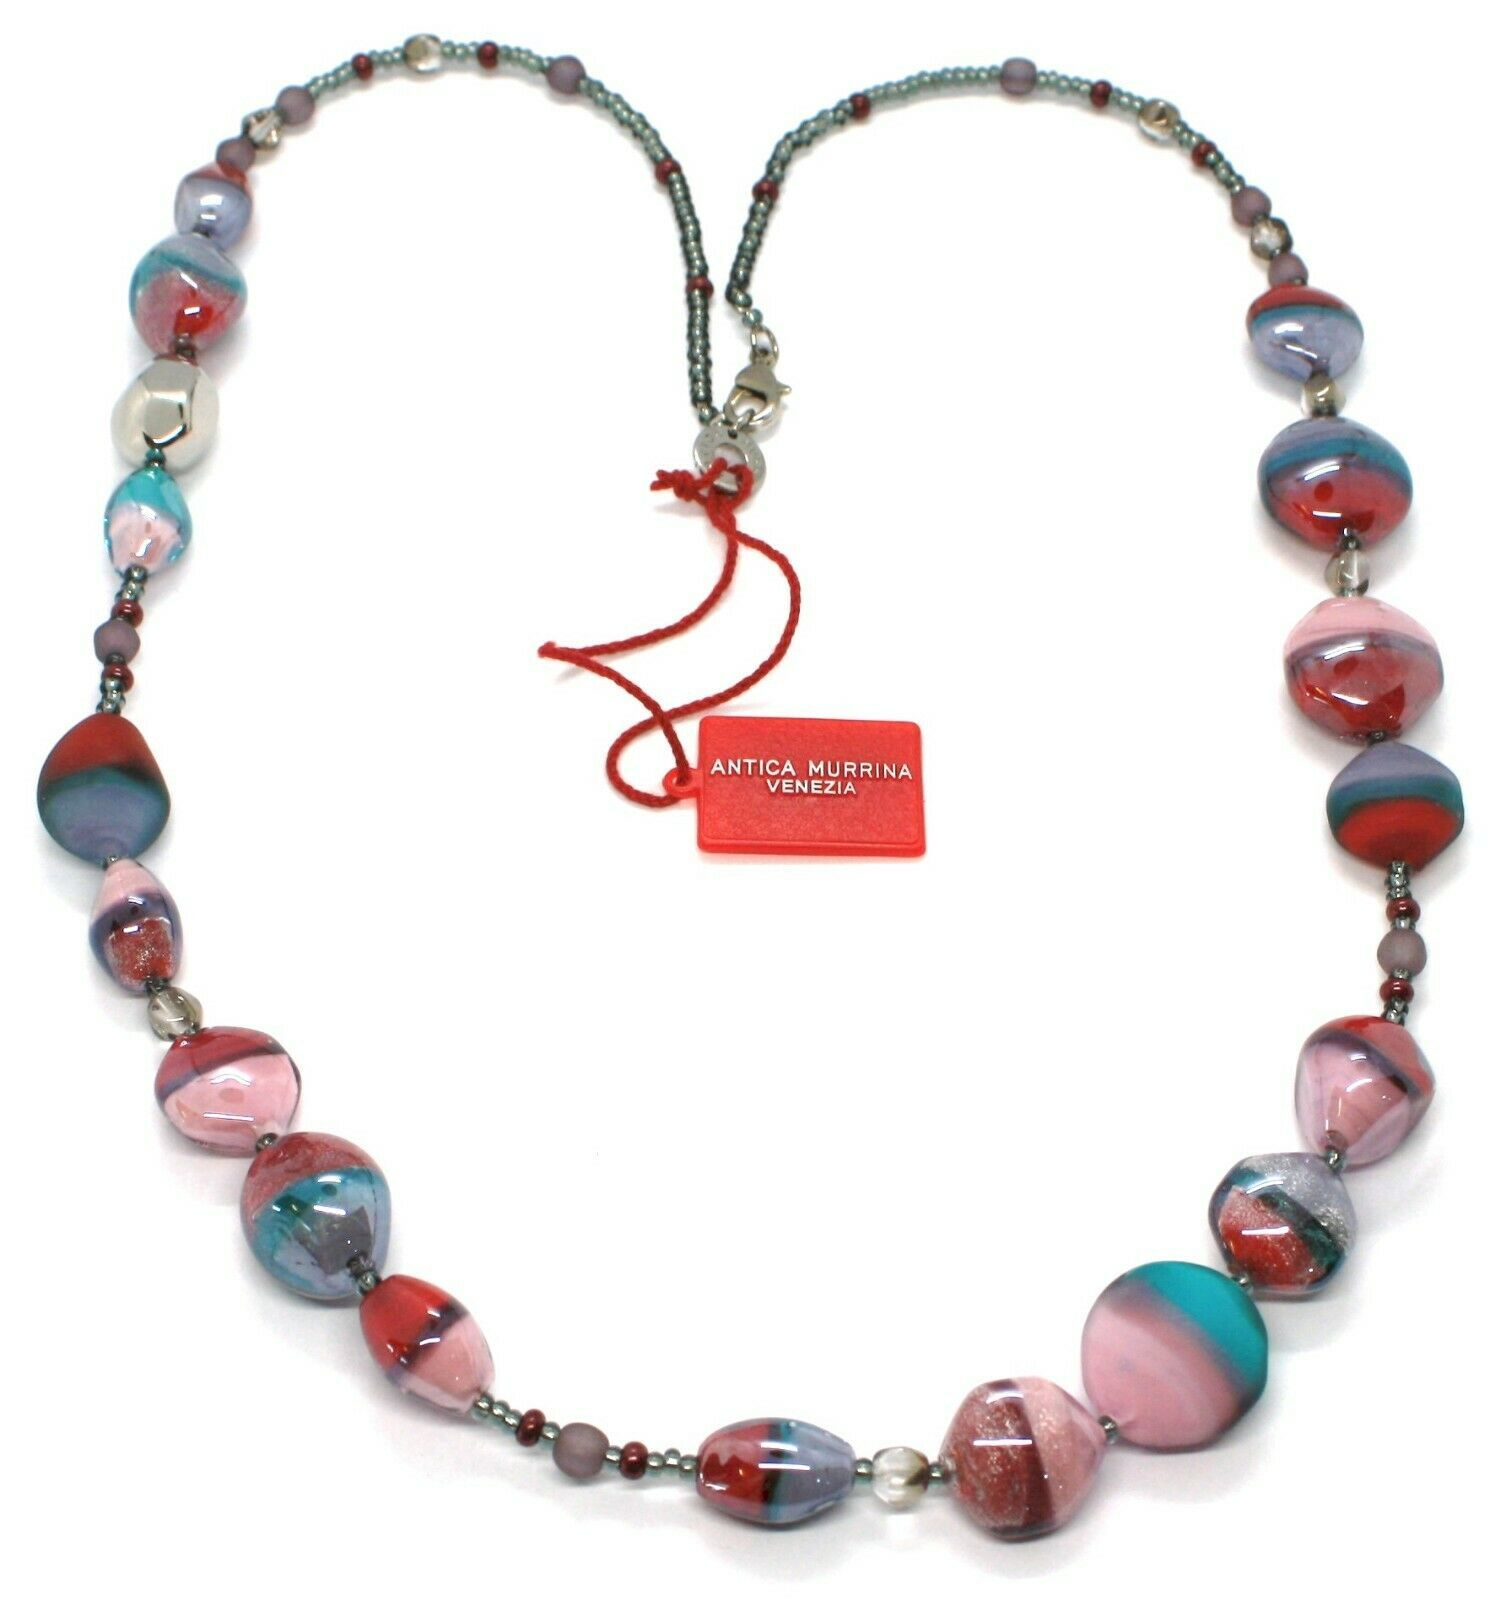 Necklace Antique Murrina, CO979A04, 31 1/2in, Red Light Blue Pink, Effect Sand